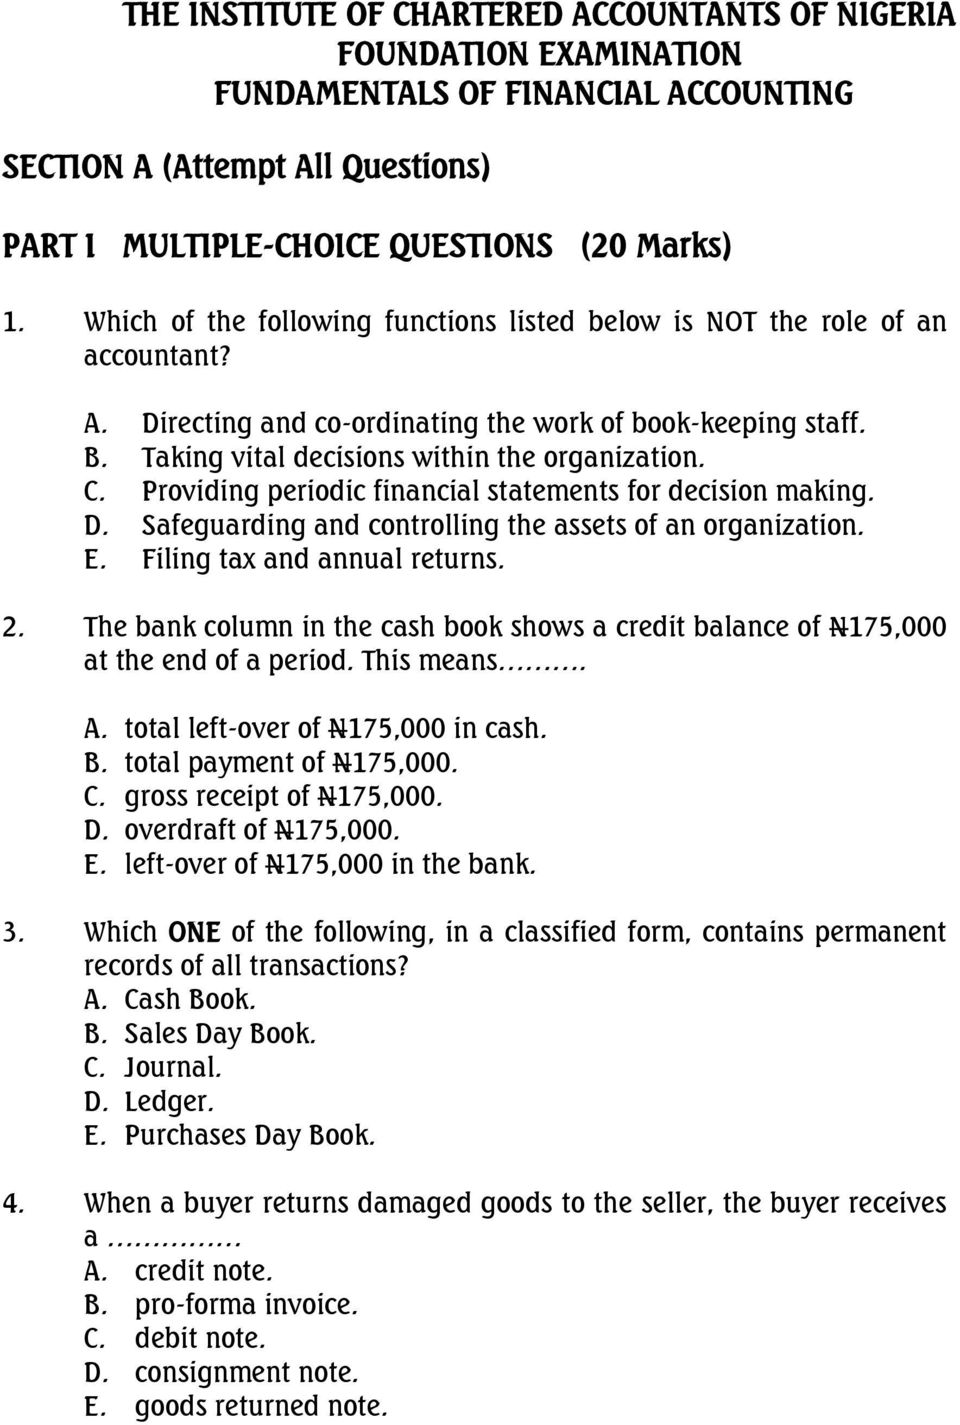 n4 financial accounting question papers and memos